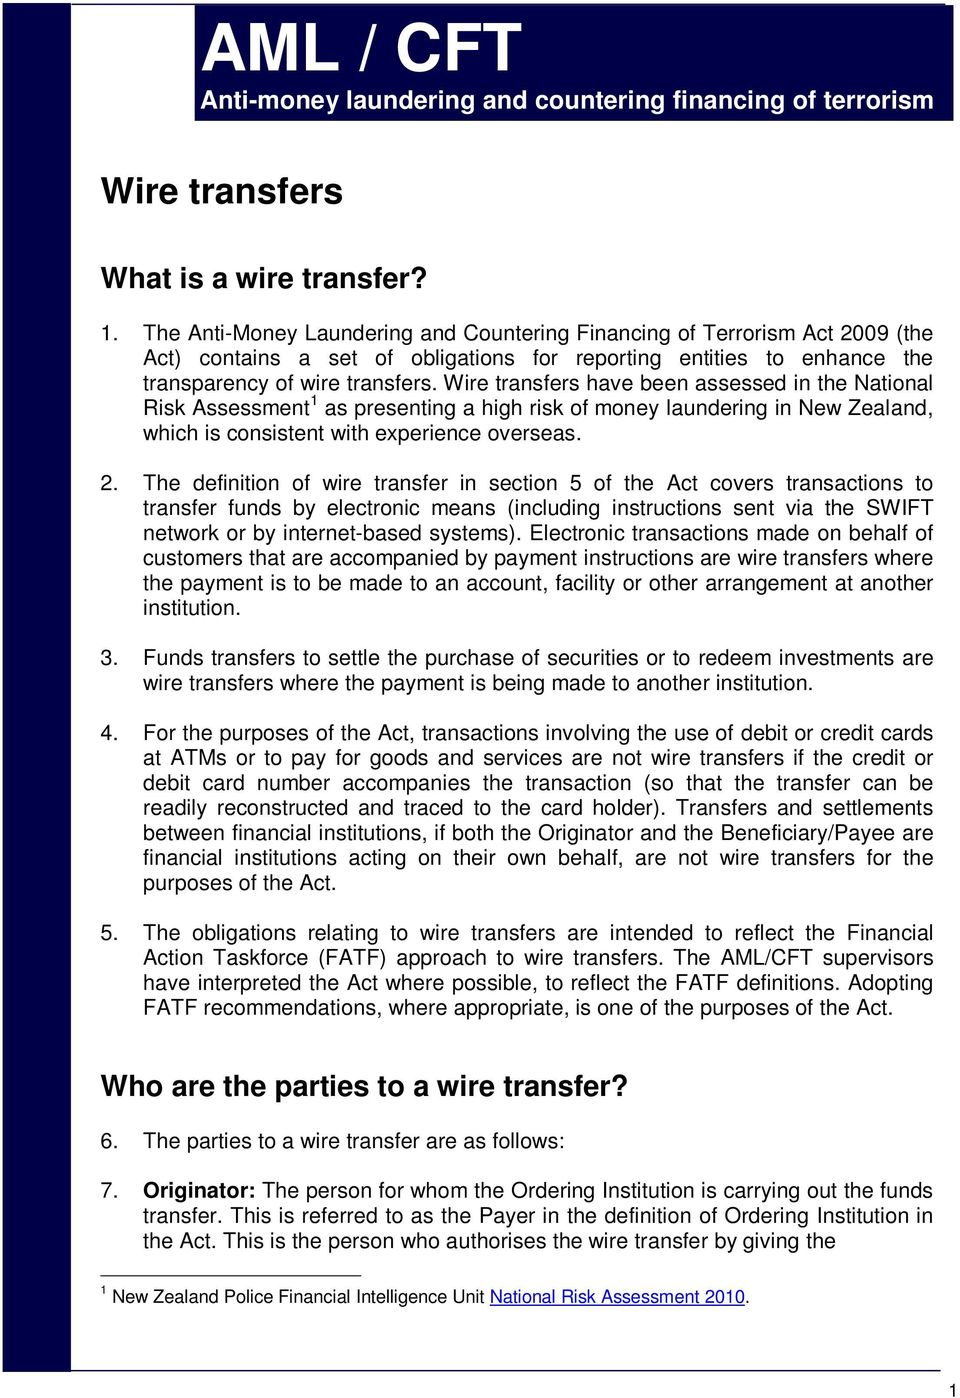 Wire transfers have been assessed in the National Risk Assessment 1 as presenting a high risk of money laundering in New Zealand, which is consistent with experience overseas. 2.